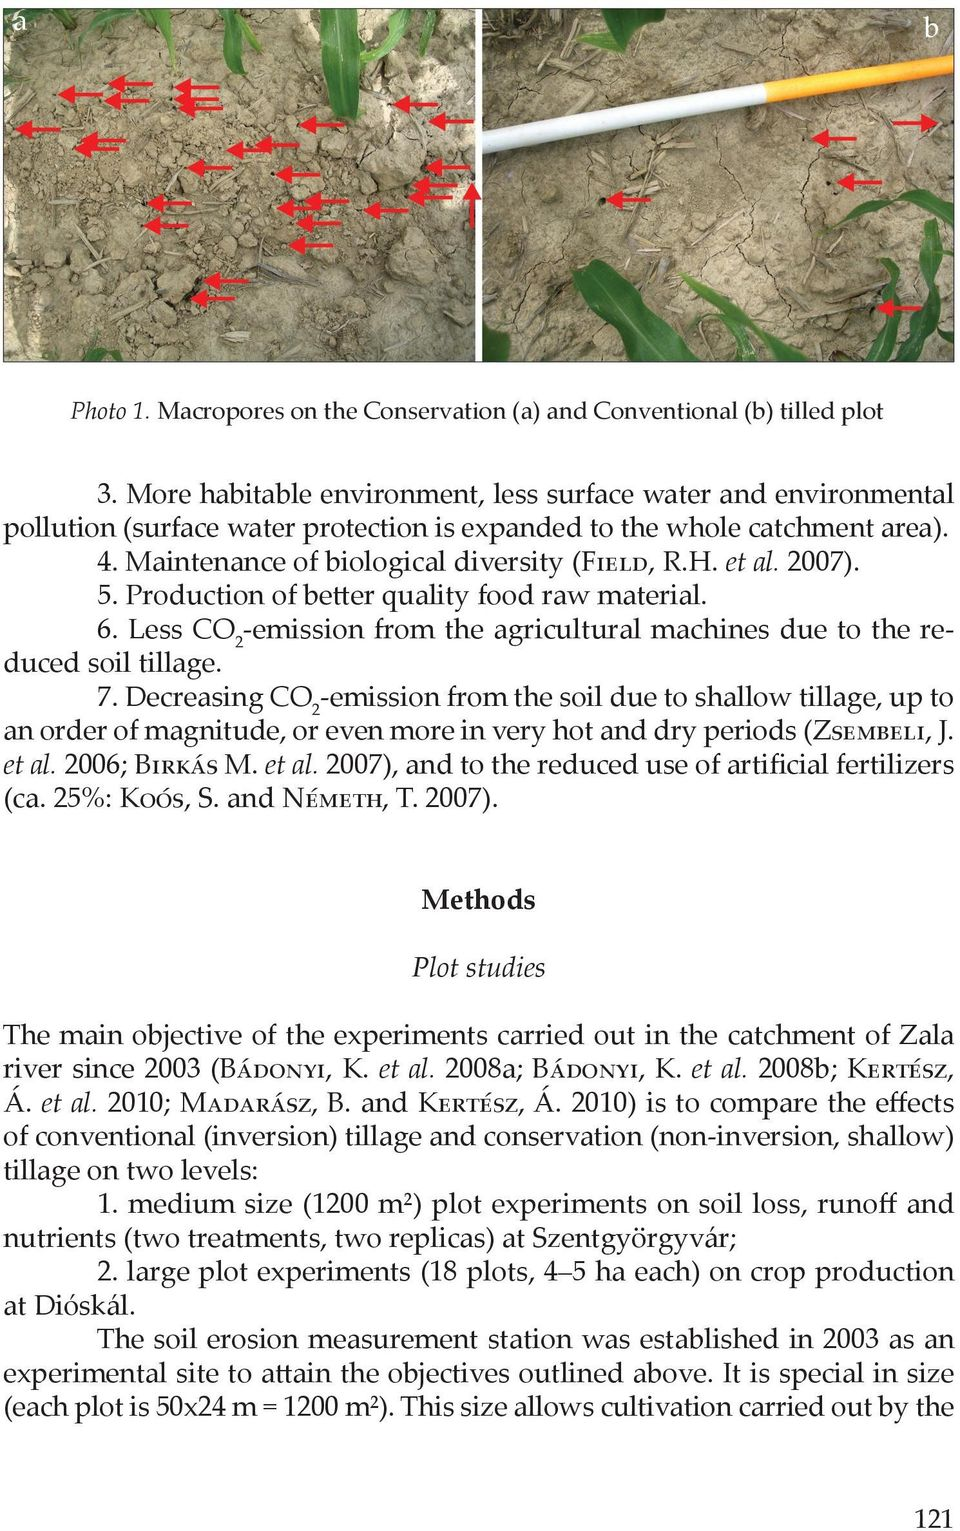 et al. 2007). 5. Production of better quality food raw material. 6. Less CO 2 -emission from the agricultural machines due to the reduced soil tillage. 7.